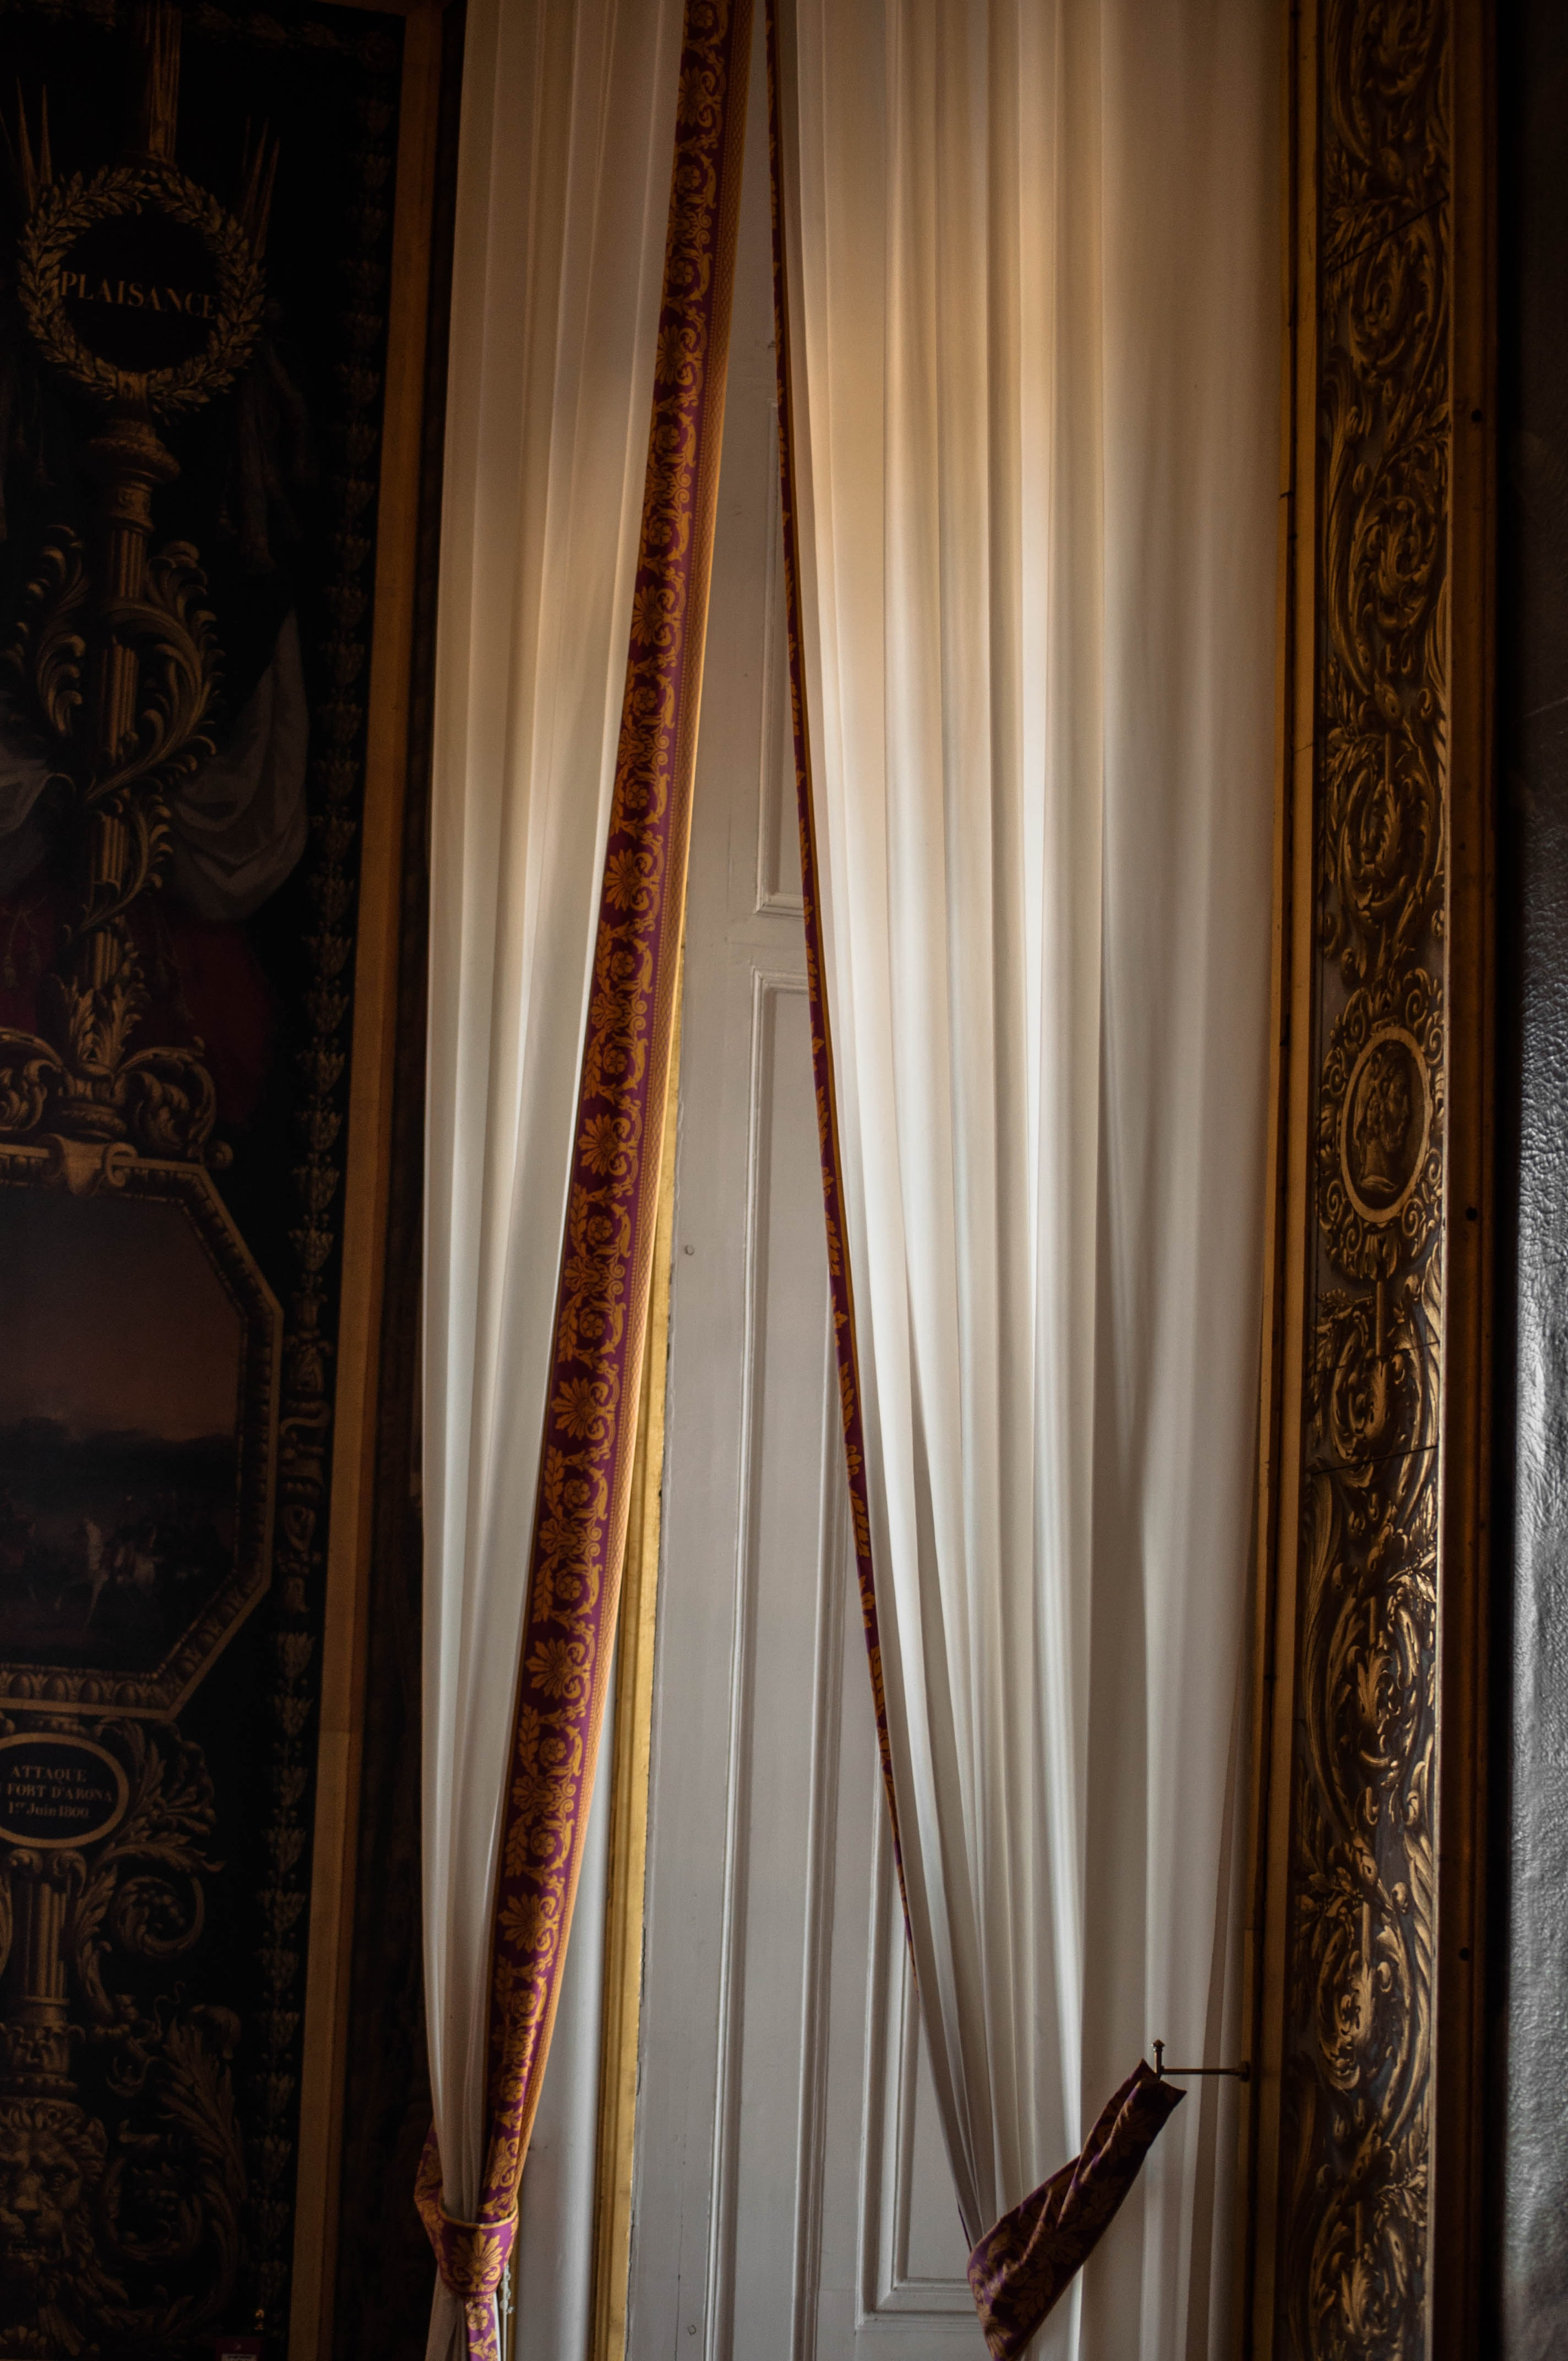 White And Gold Floral Window Curtain Photo Free Chateau De Versailles Image On Unsplash